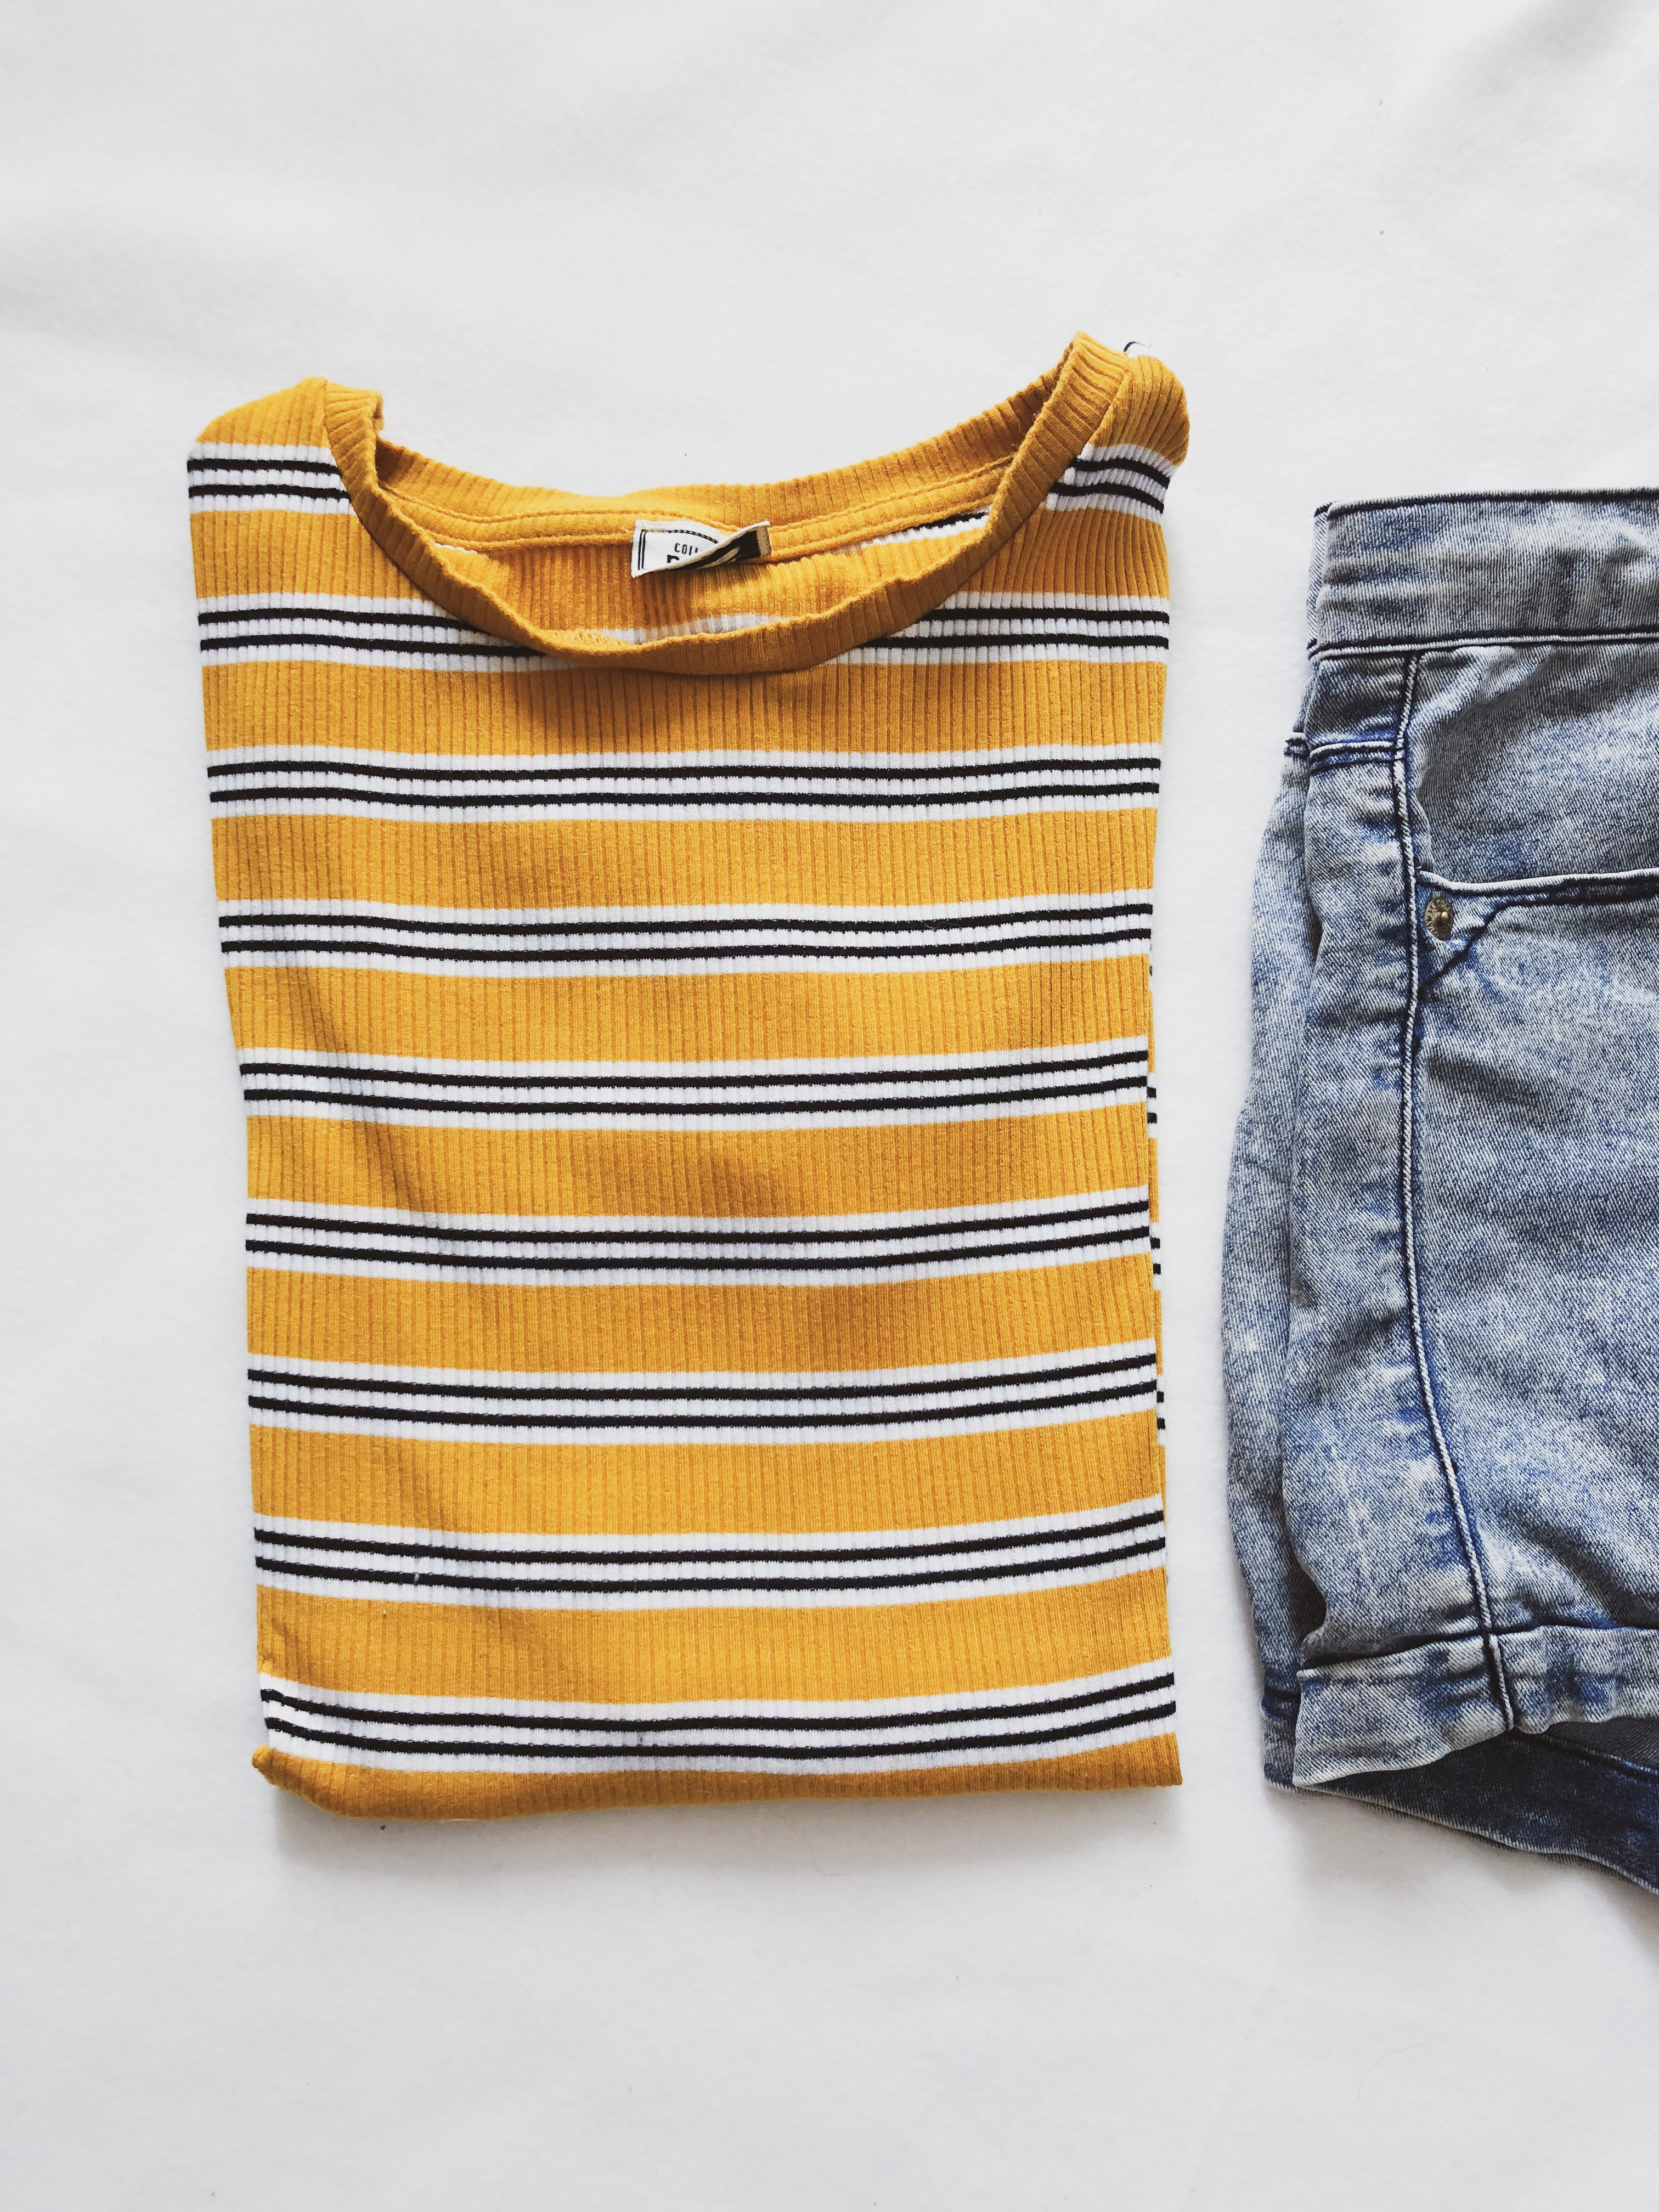 What I got in sales: Yellow striped shirt Pinkie